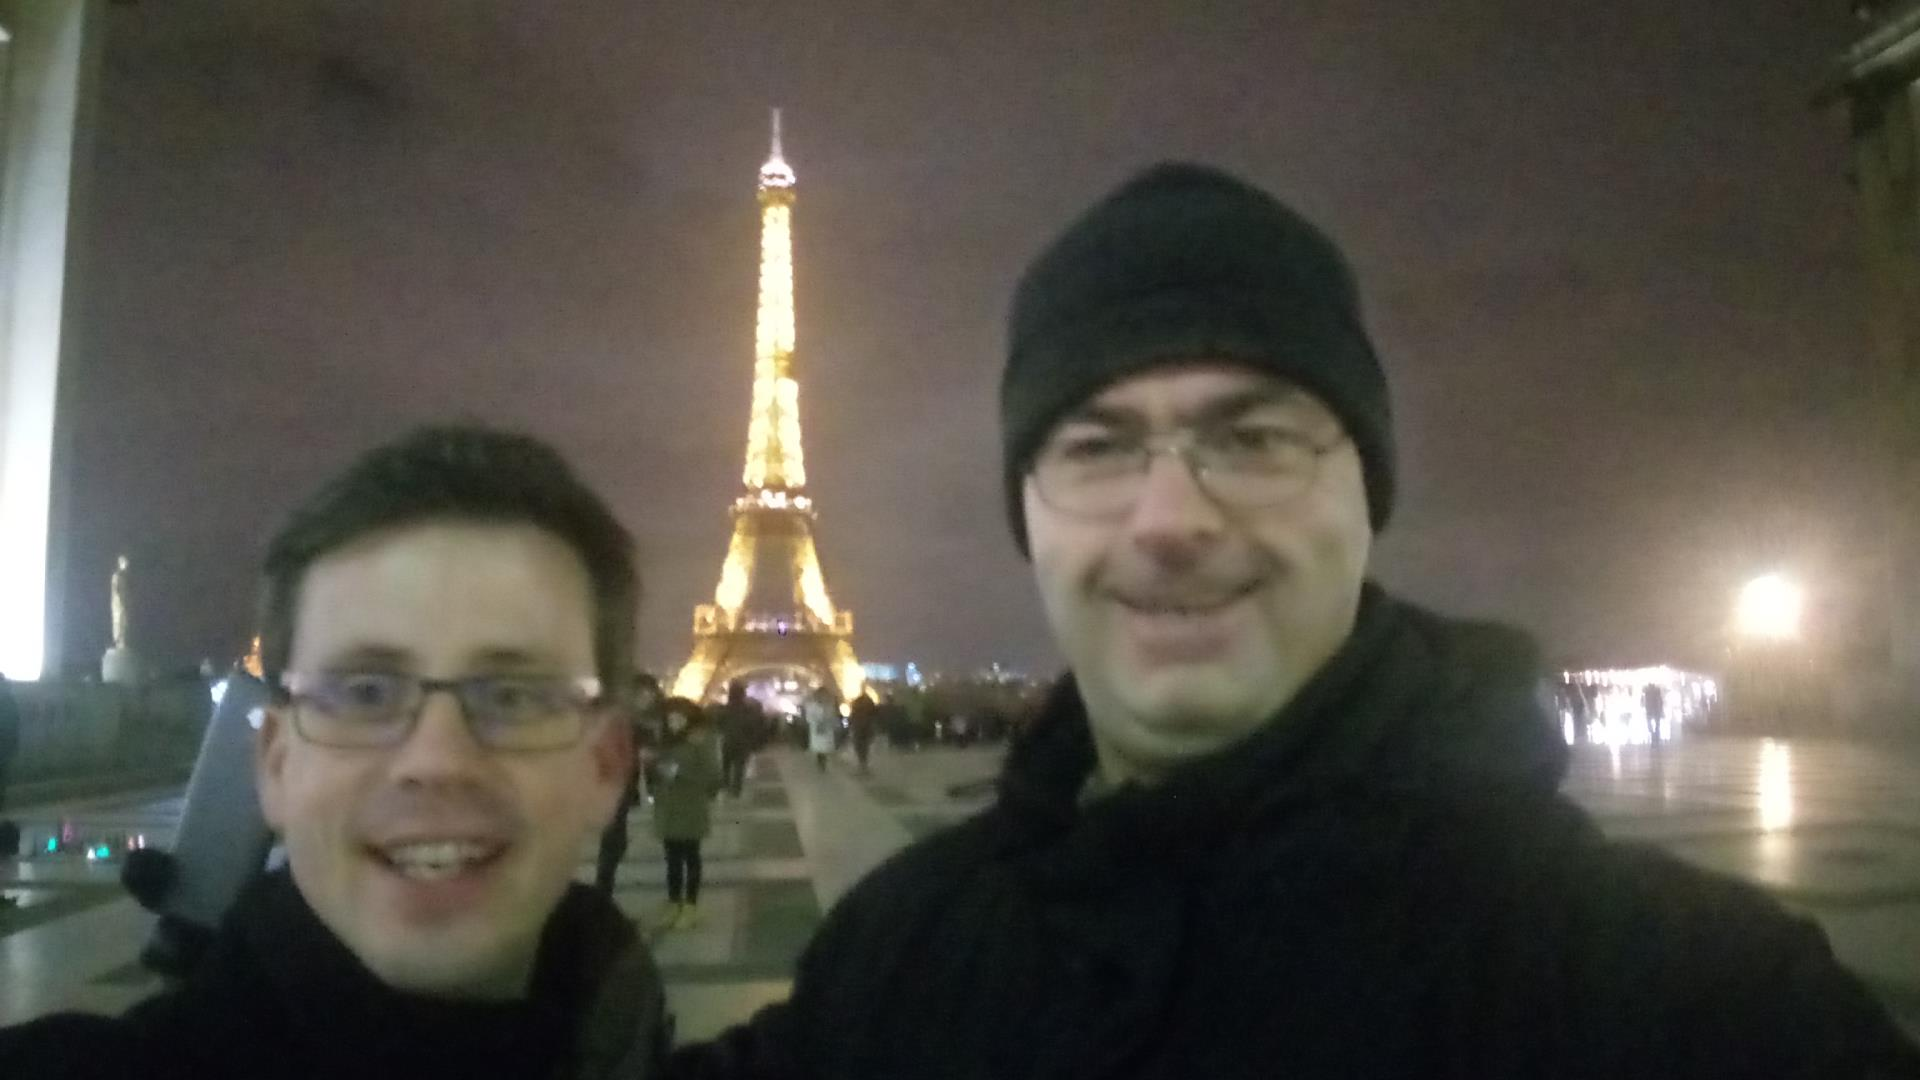 Željko and Boštjan in Paris: Eiffel tower also in the picture